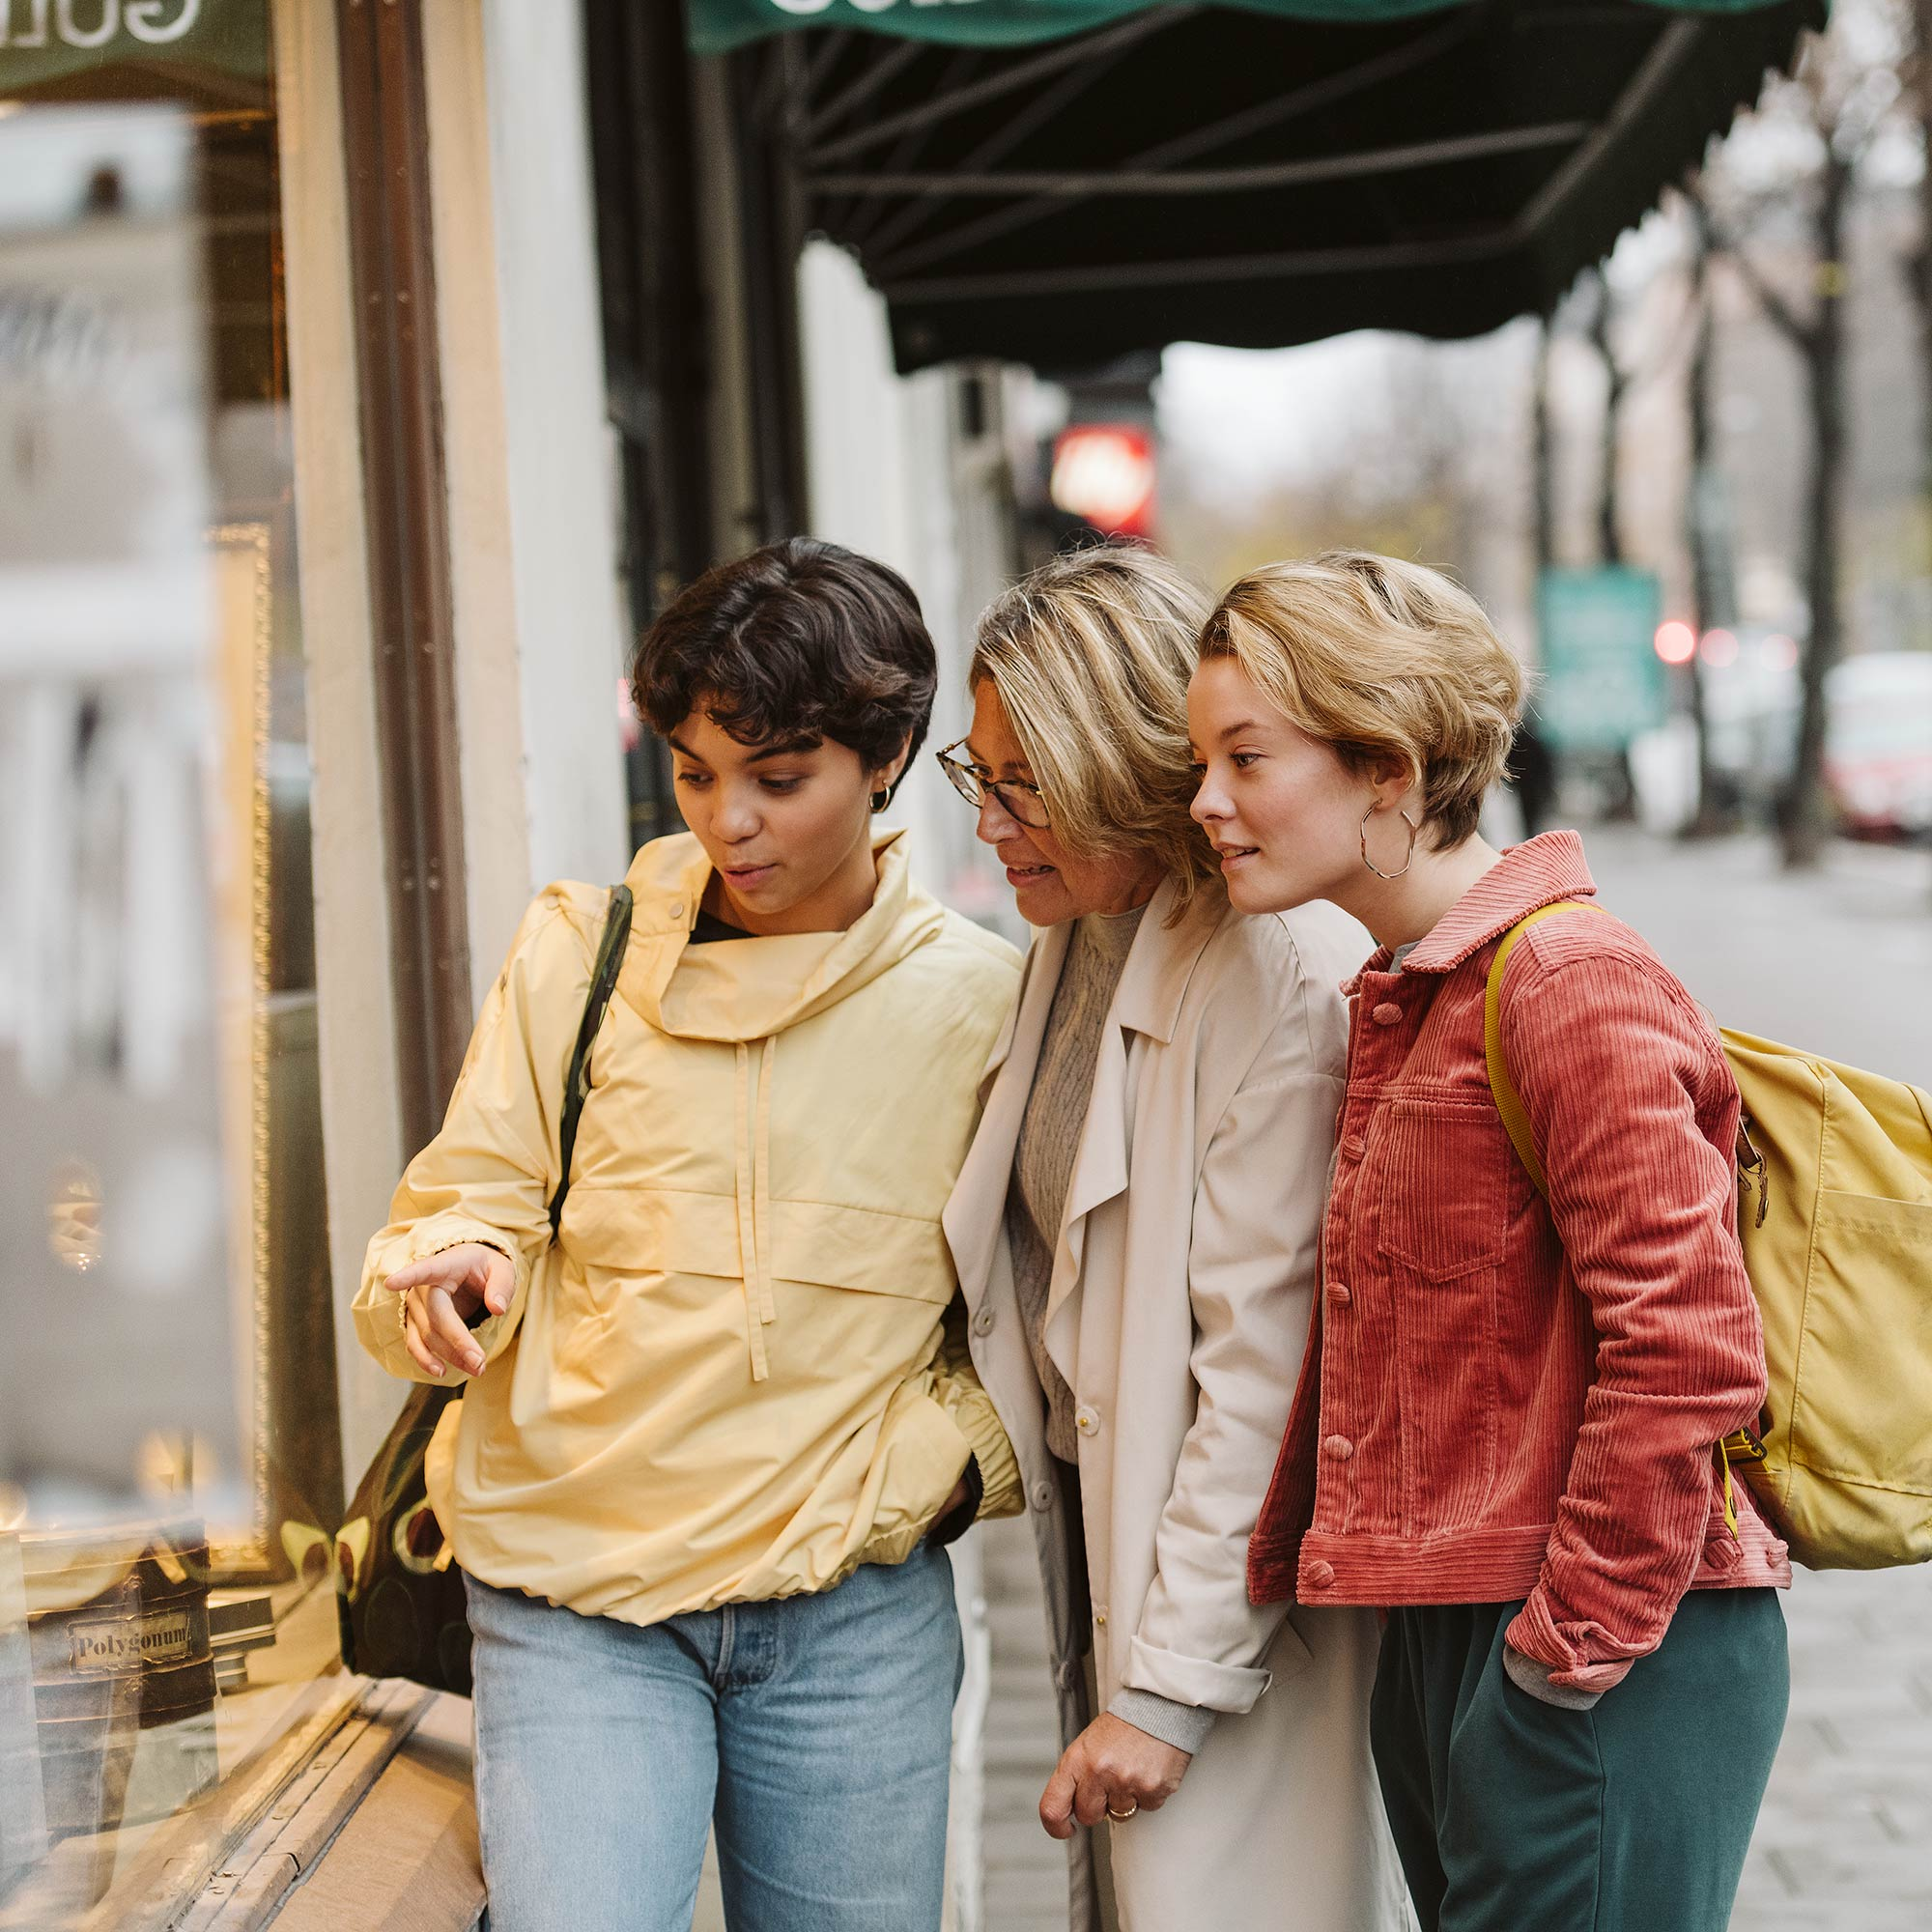 Three women window shopping.